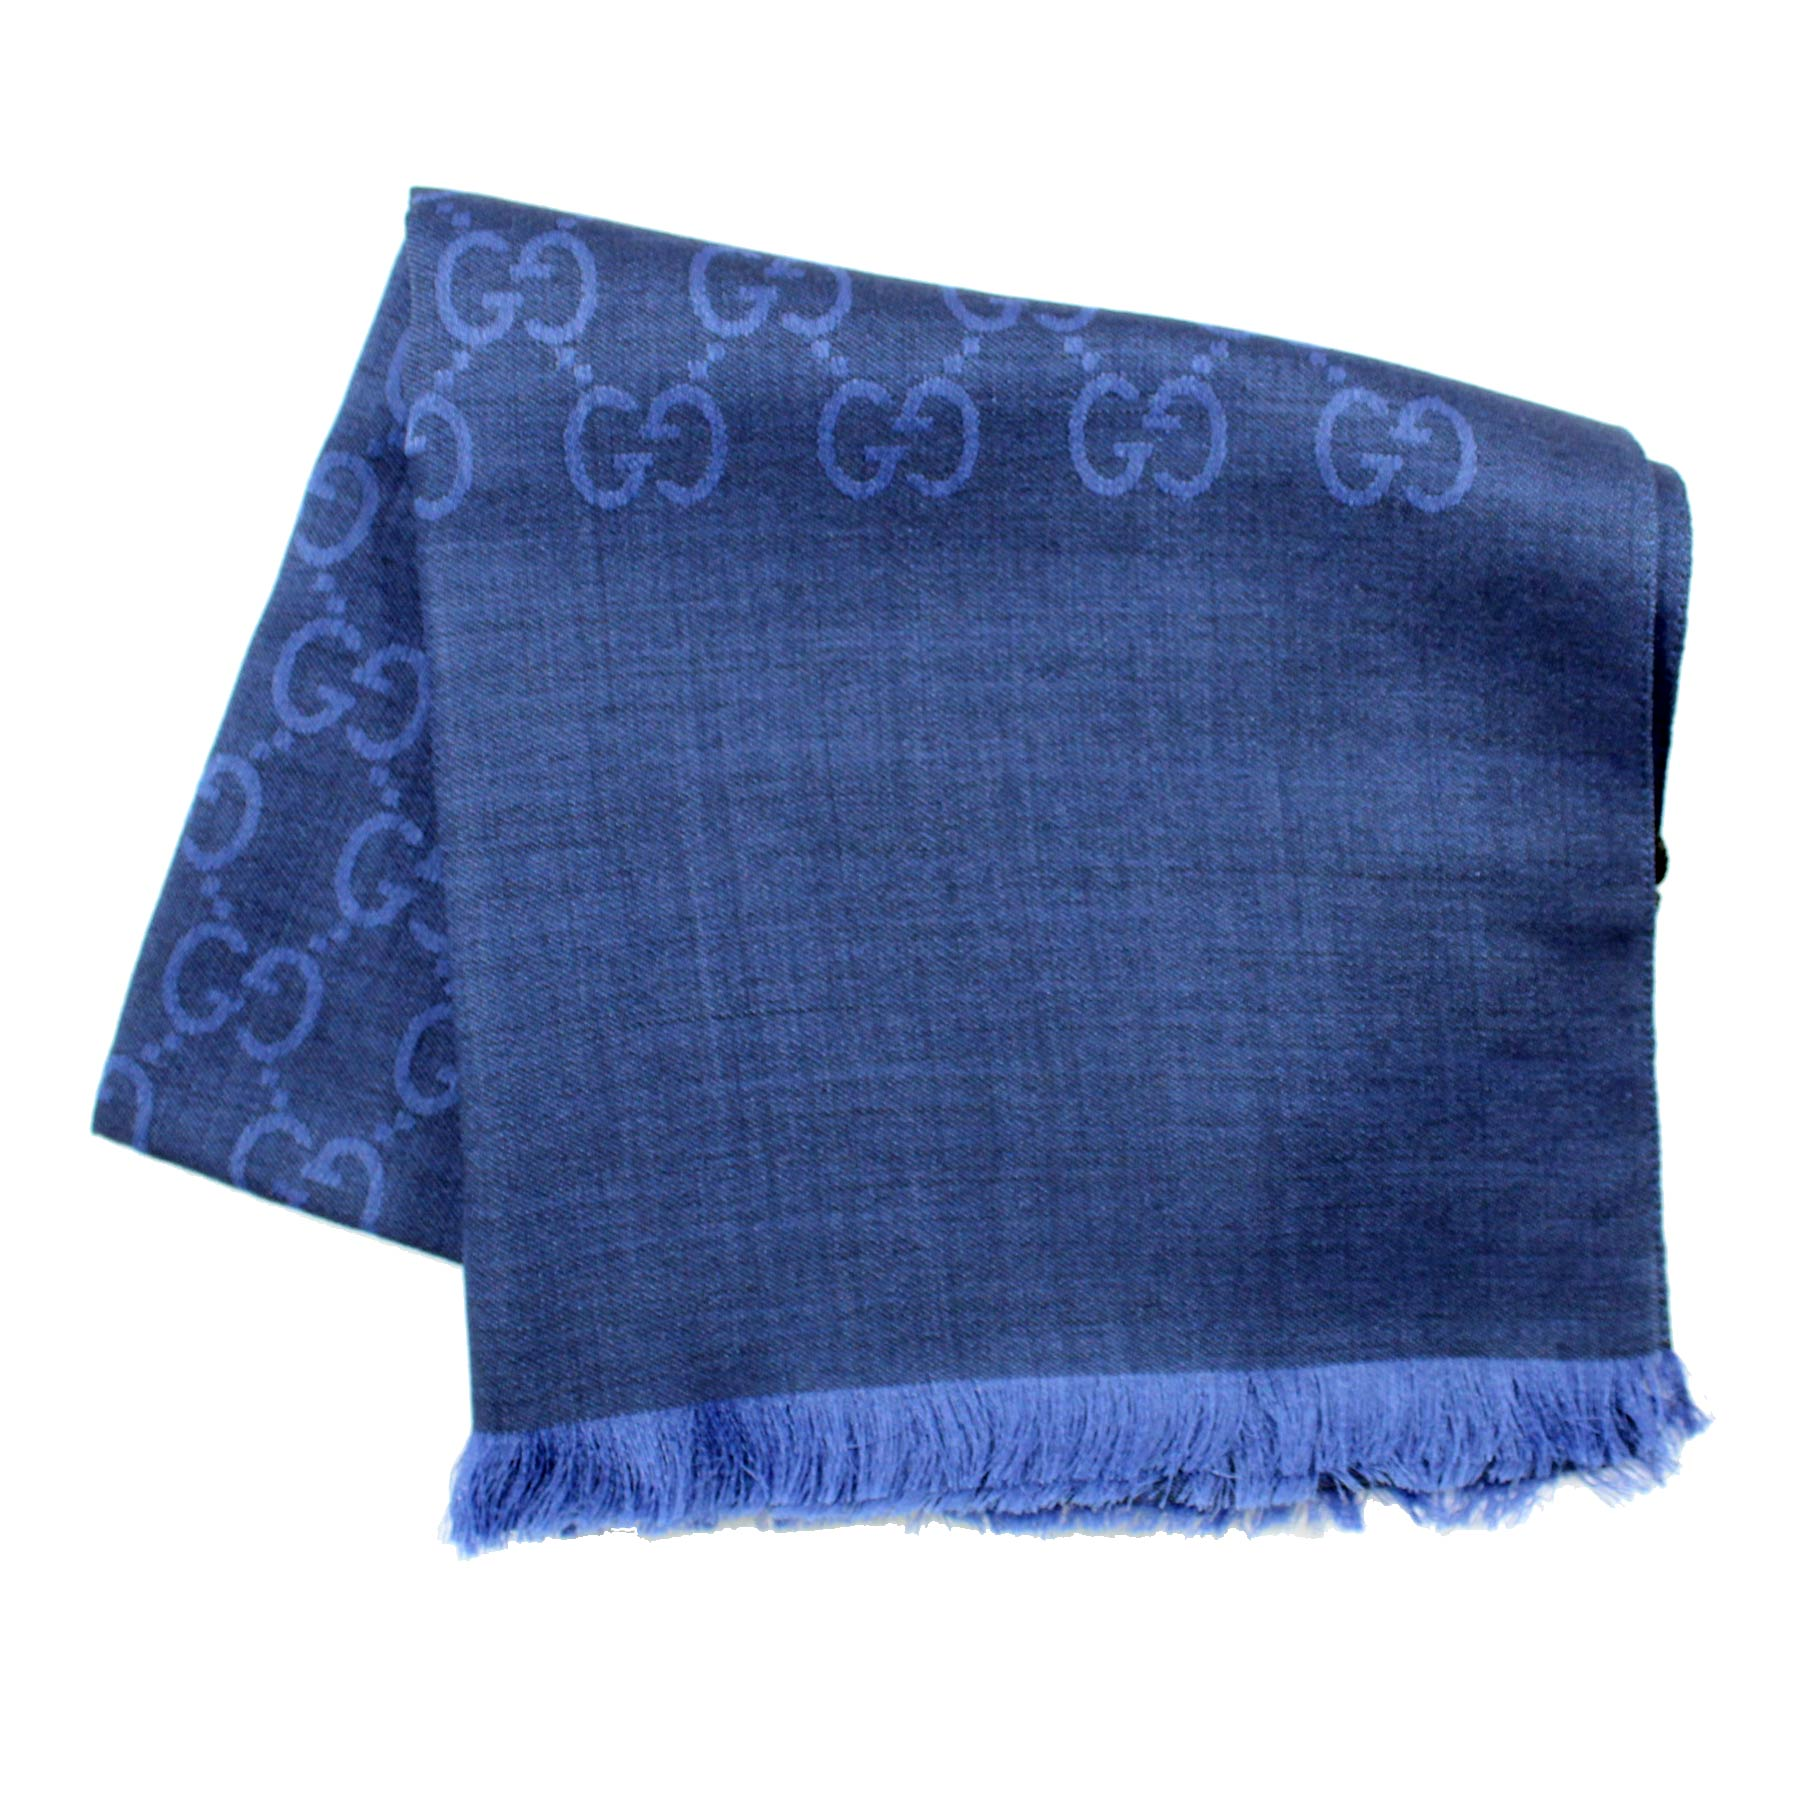 Gucci Scarf Signature Navy Blue GG Pattern Wool Silk Shawl SALE